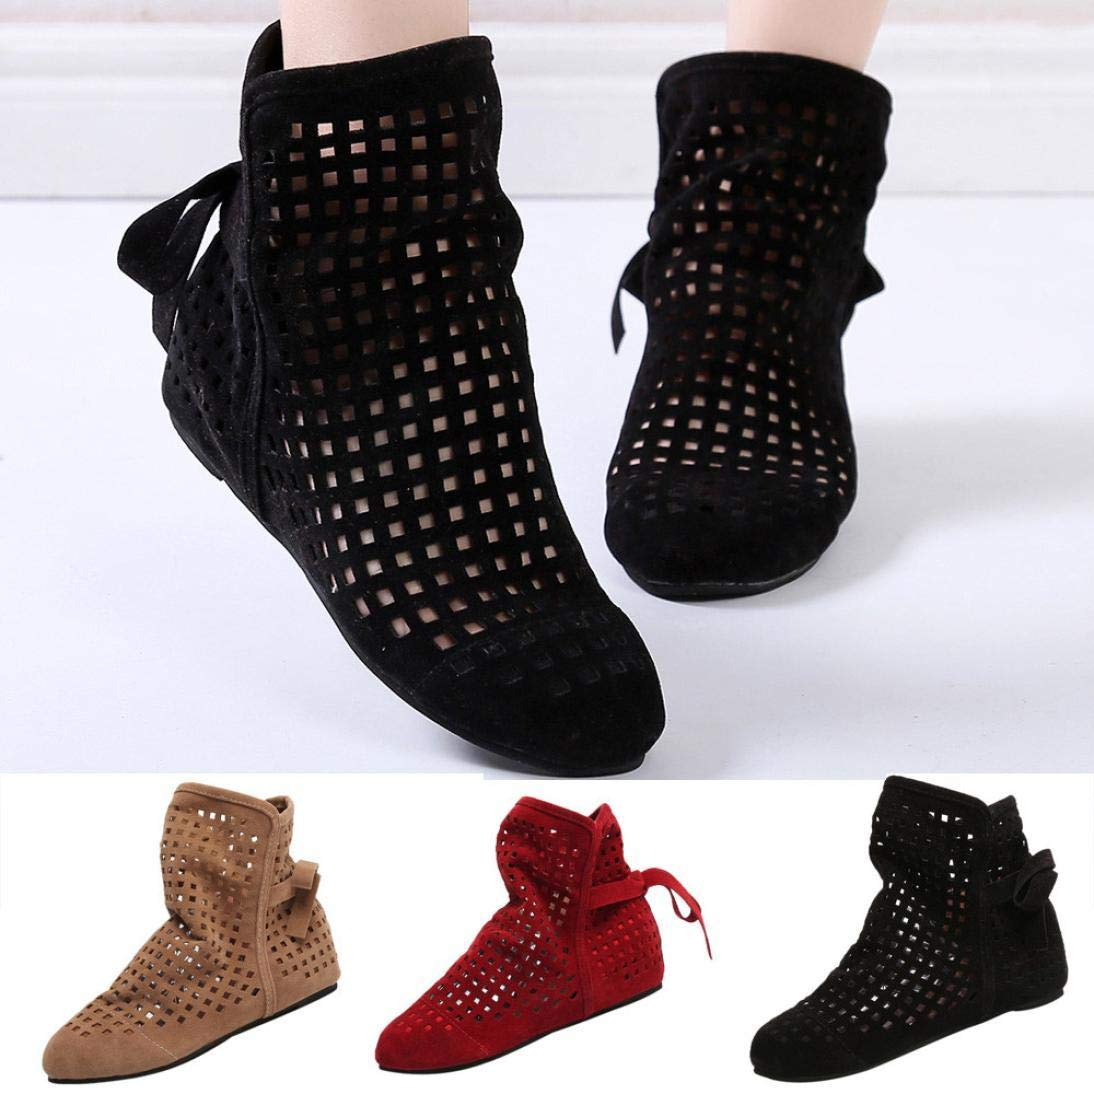 Gyoume Sandals Hollow Out Ankle Boots Shoes Women Flat Wedges Boots Girls Cute Booties Dress Shoes by Gyoume (Image #3)